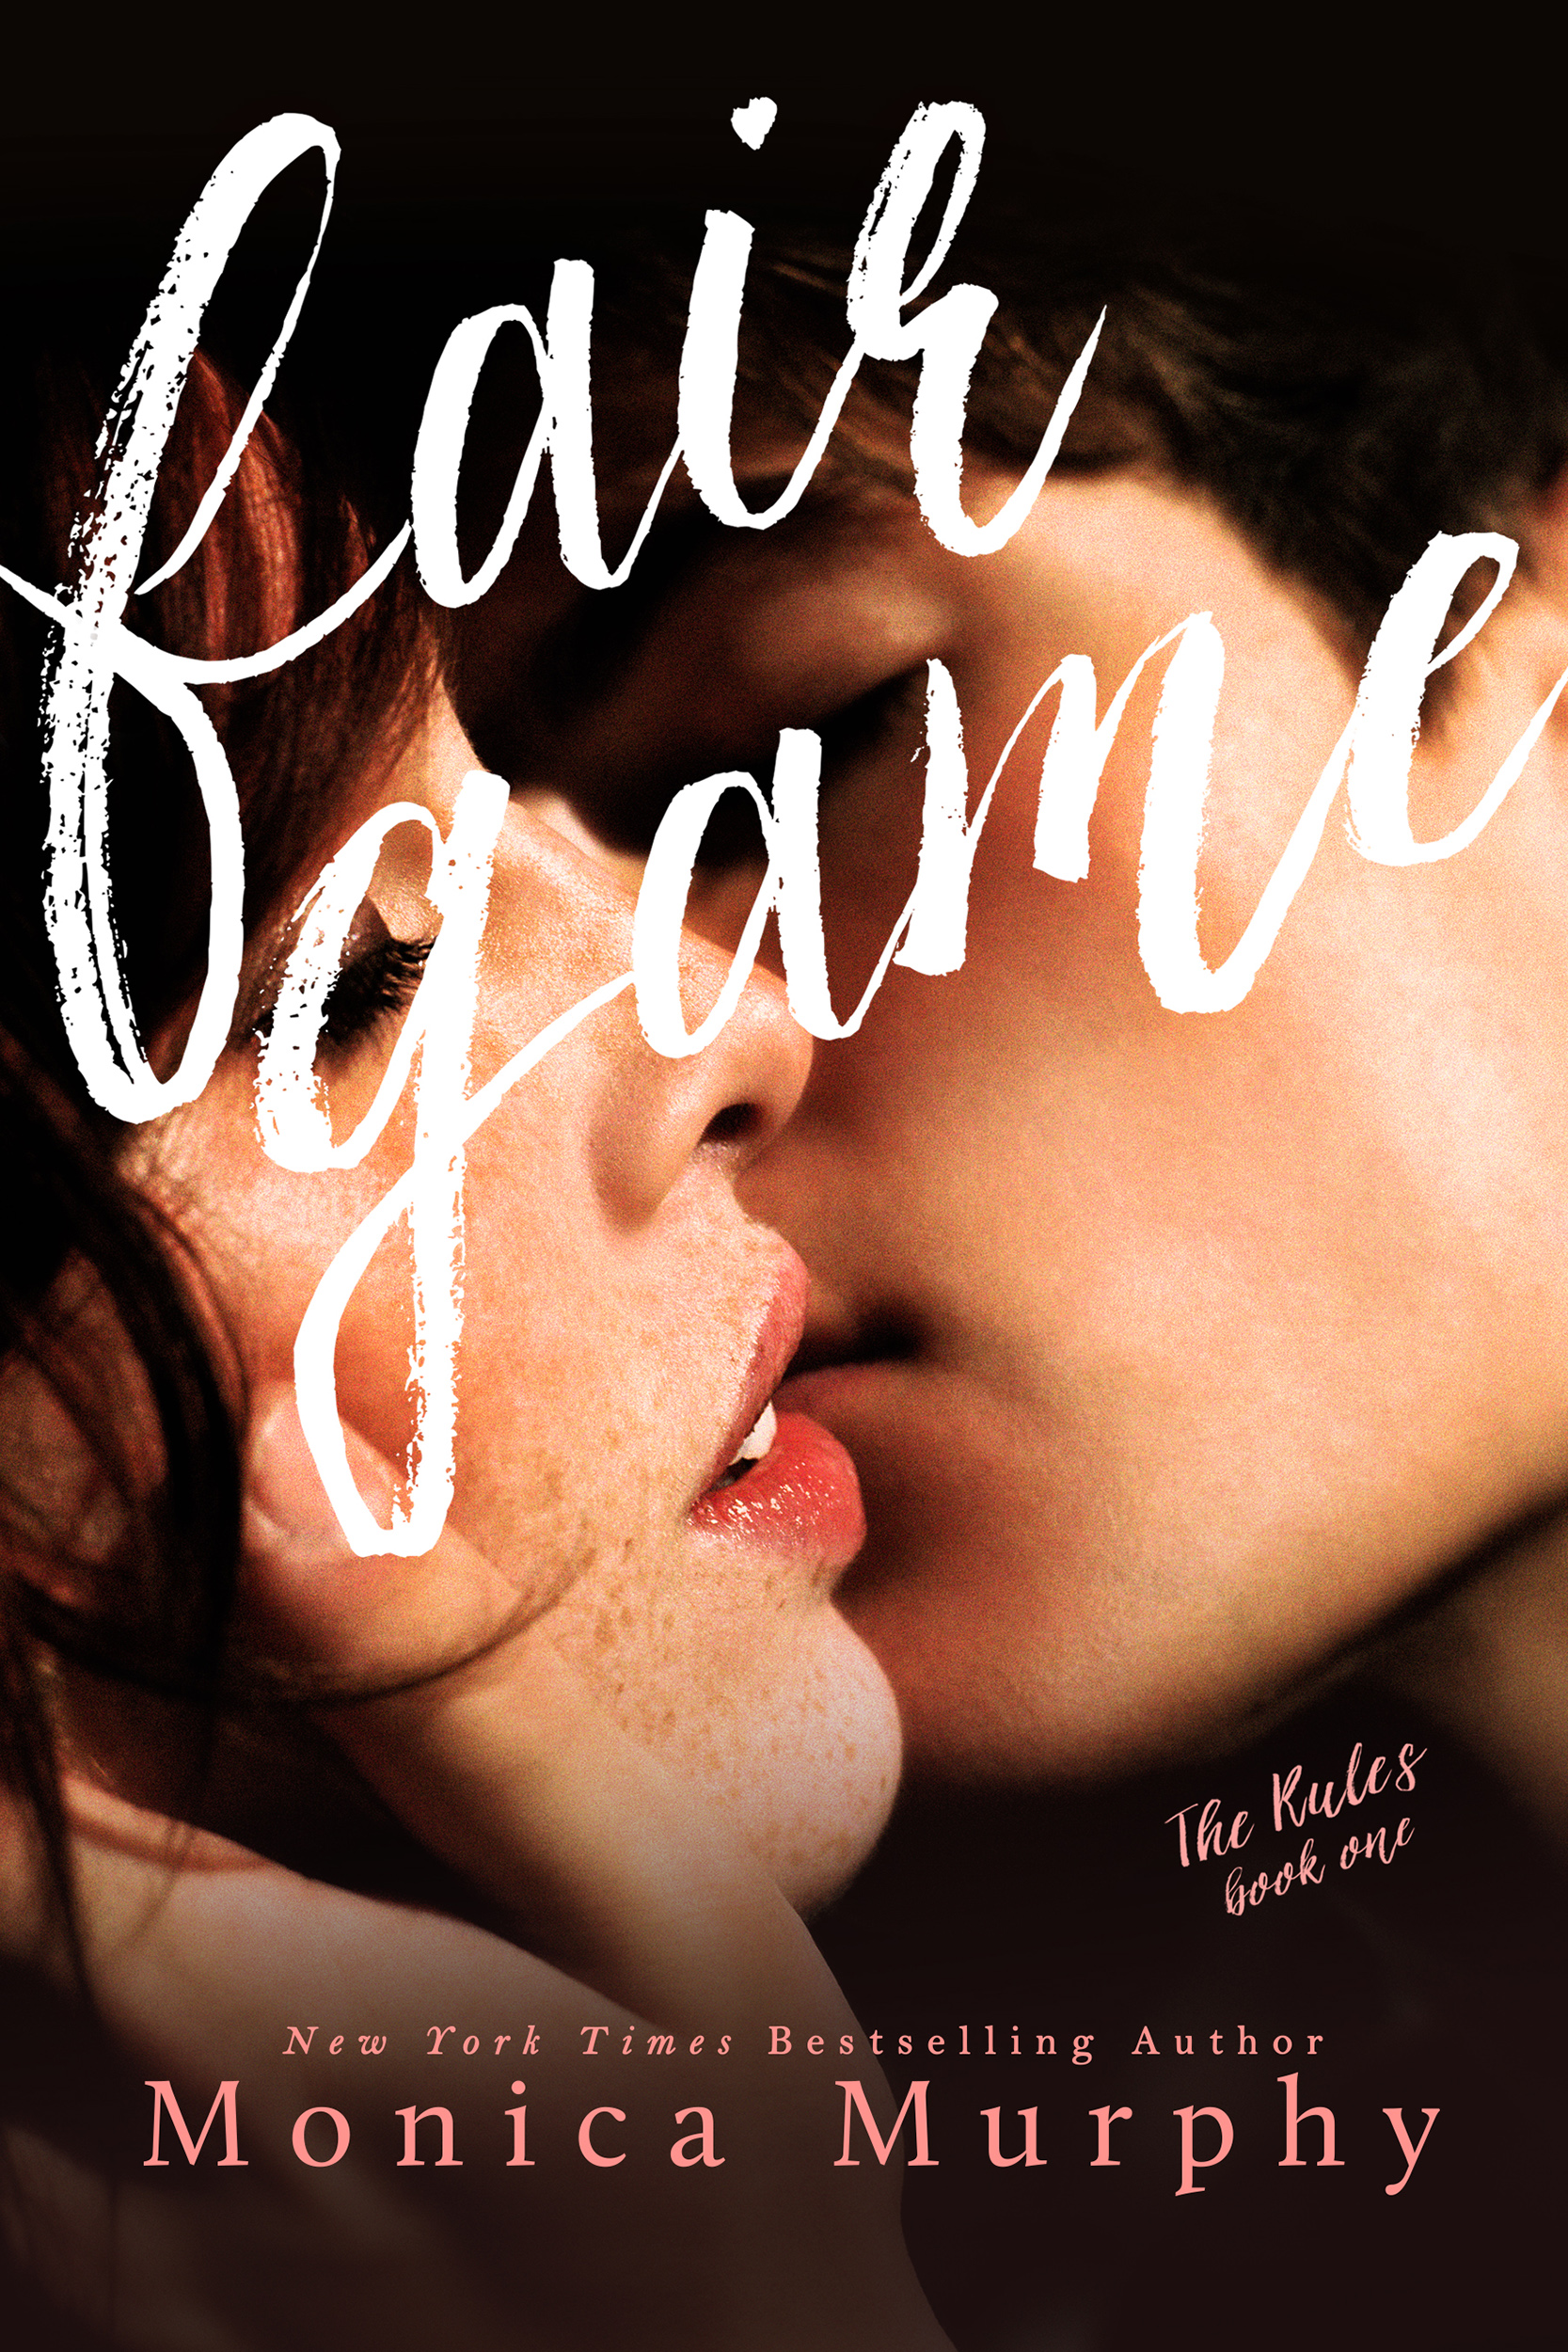 Blog Tour, Review, Teasers & Giveaway: Fair Game (The Rules #1) by Monica Murphy